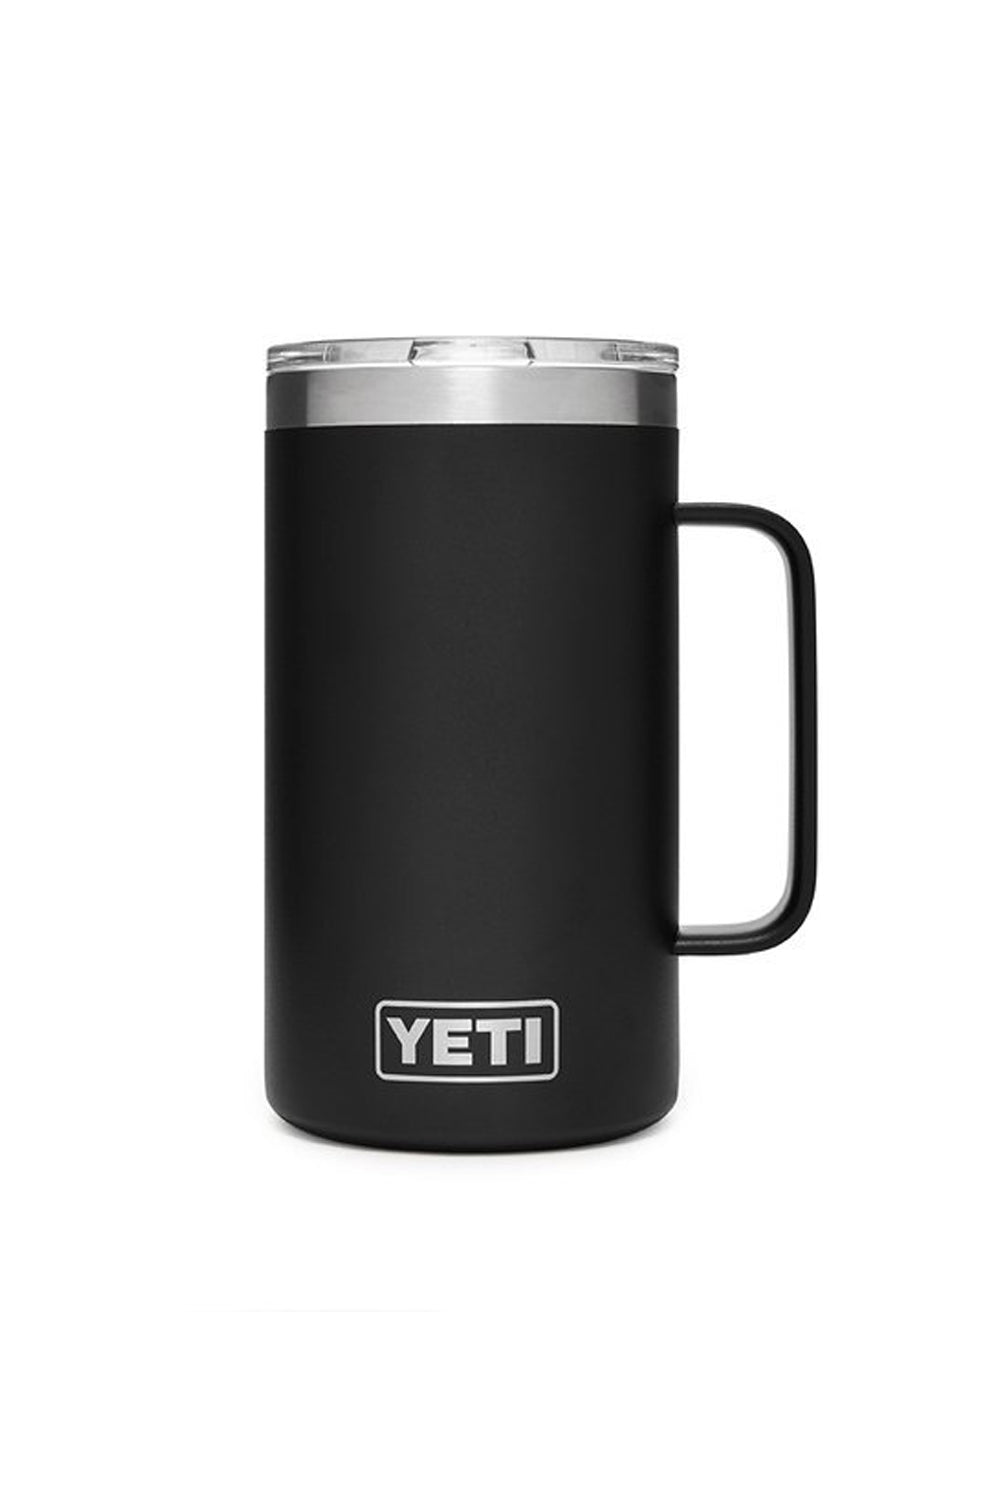 Yeti Rambler 24oz Mug With / Lid